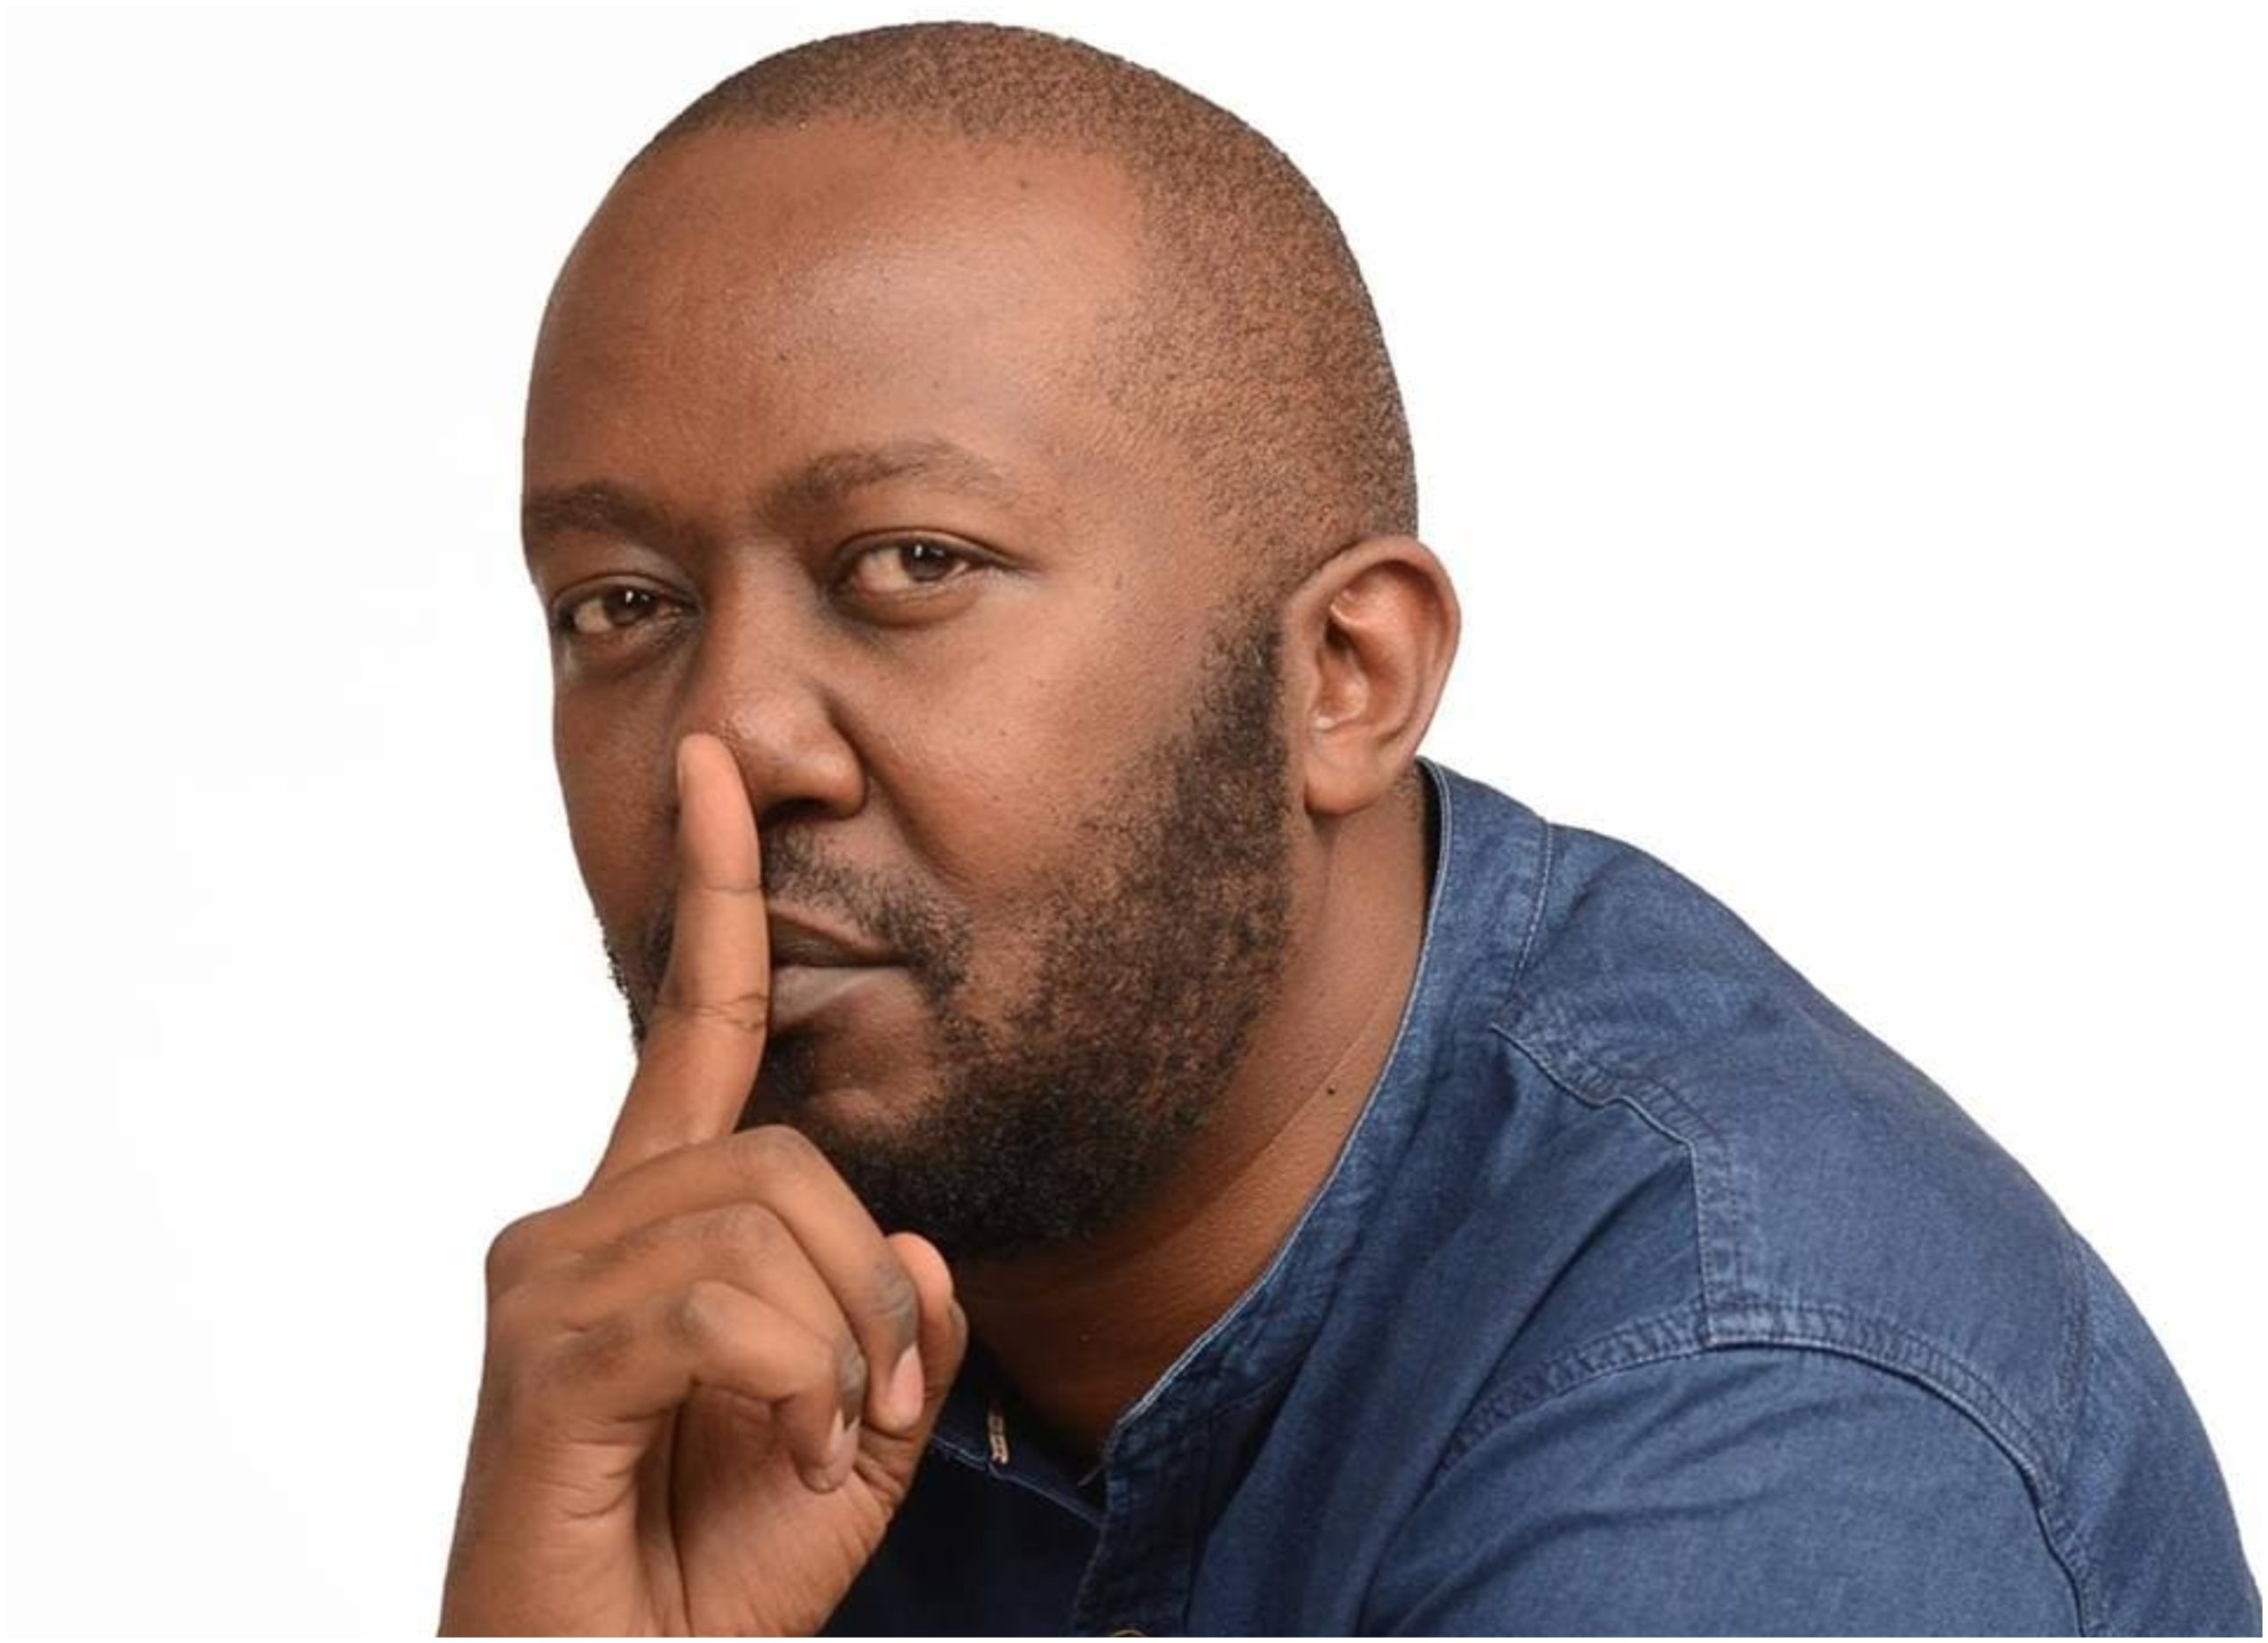 Heartbroken Andrew Kibe opens up on painful battles with side chicks